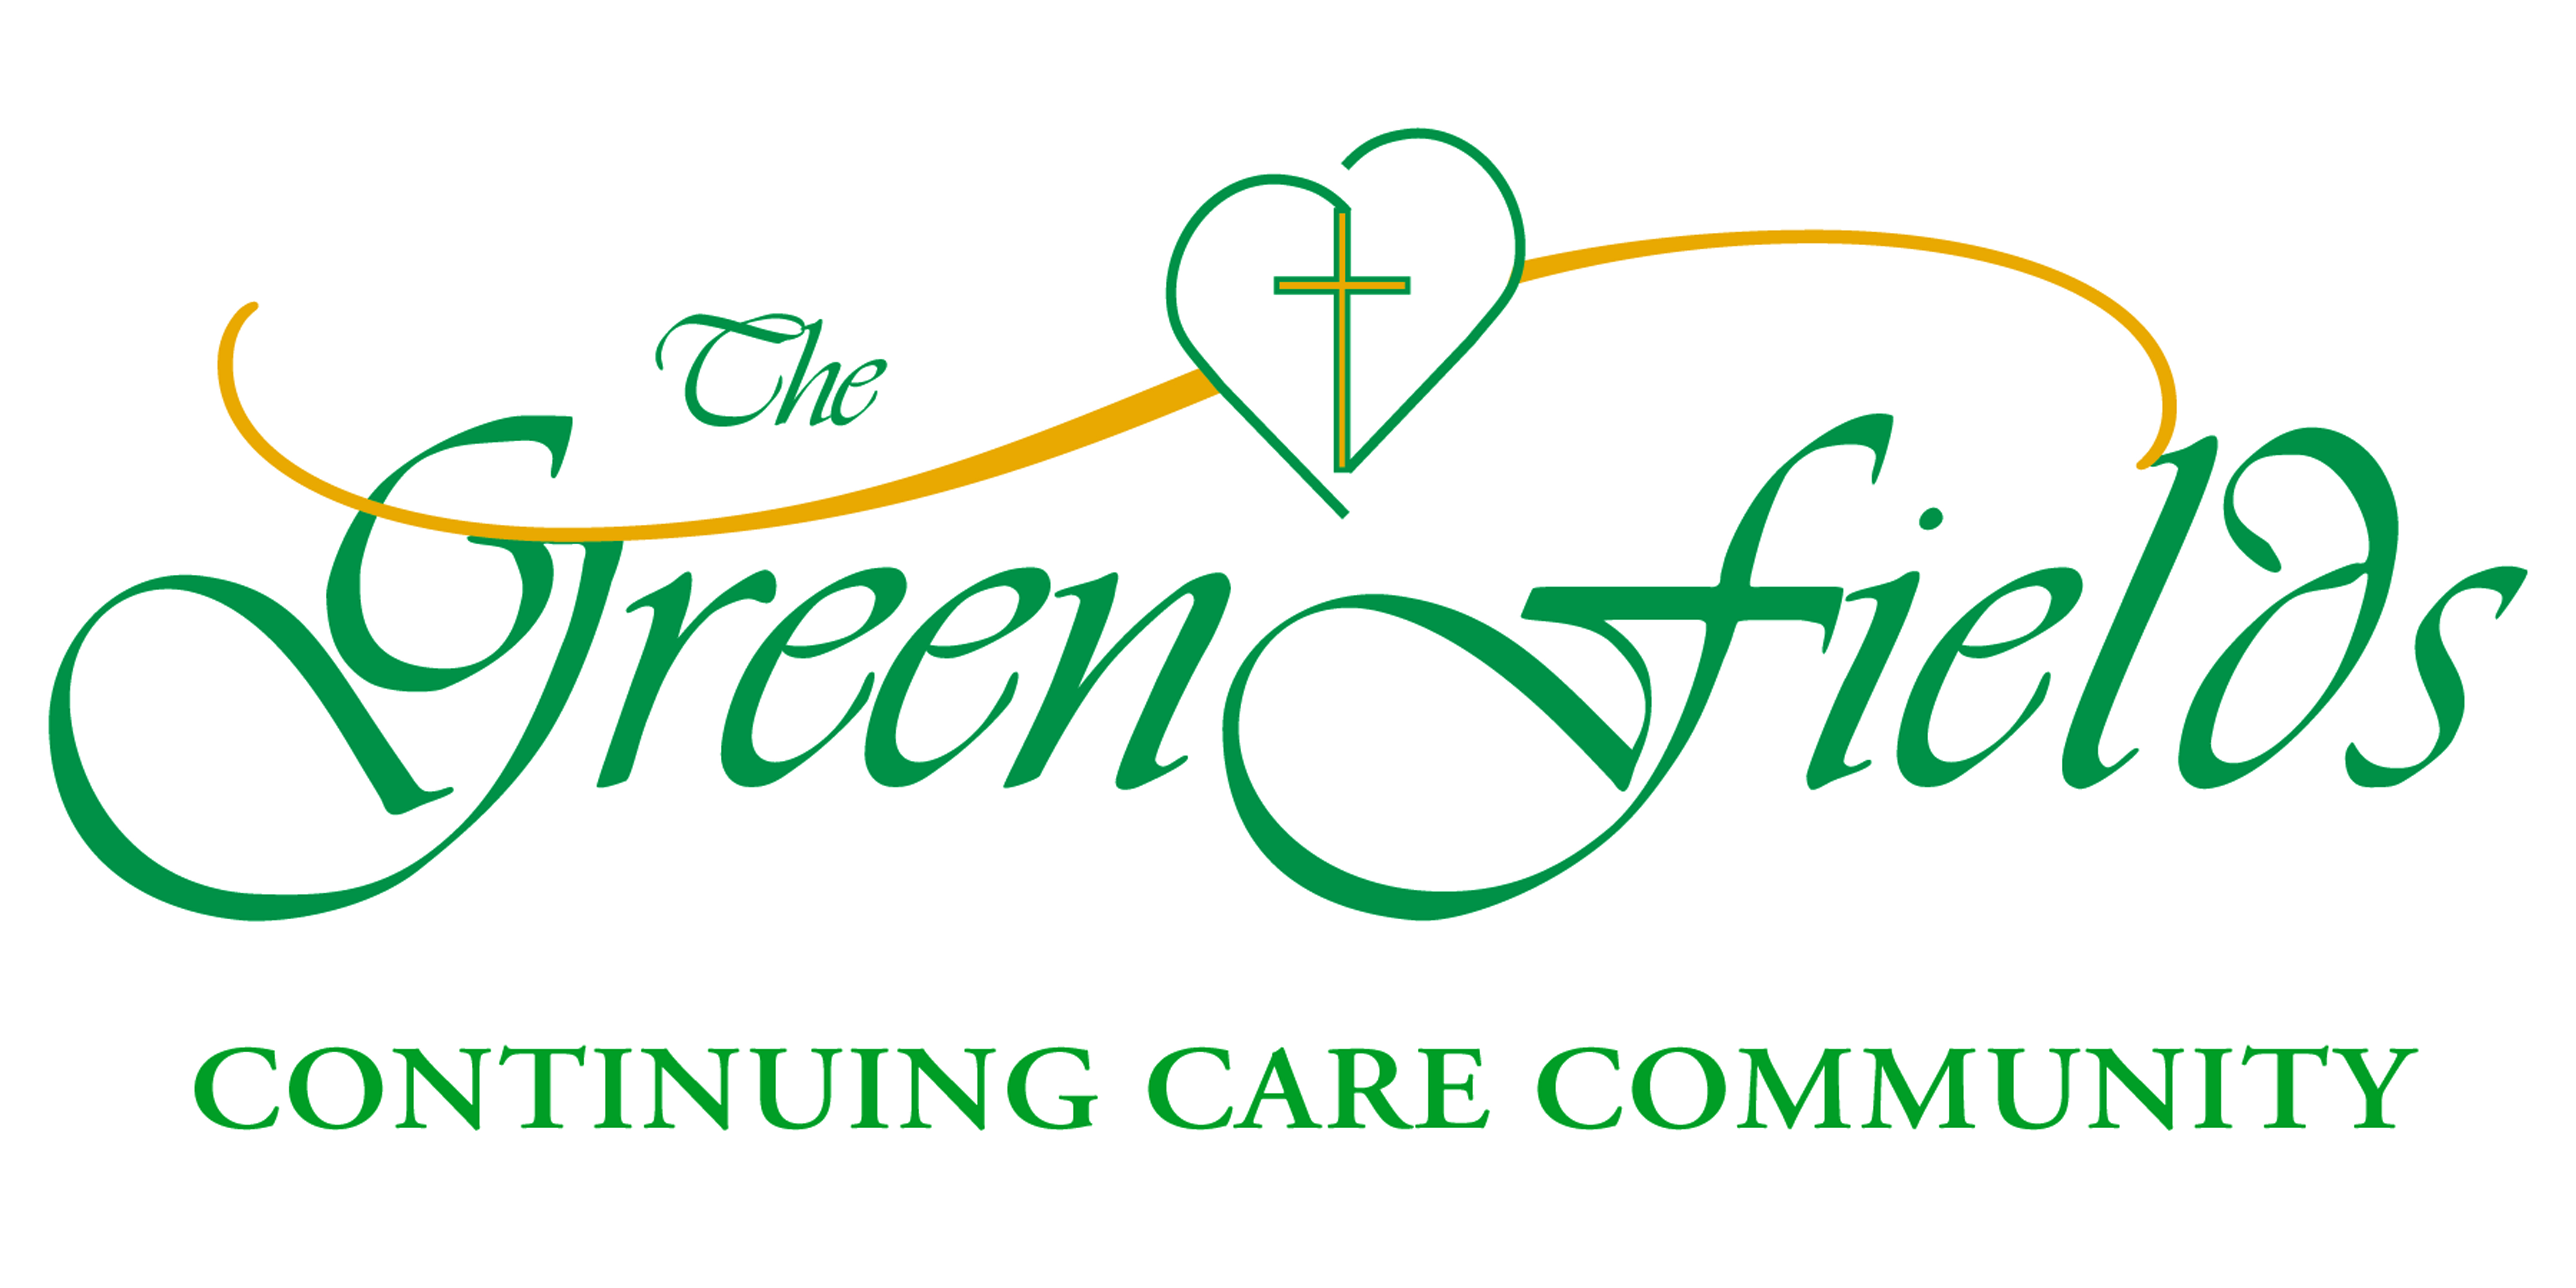 4. The GreenFields Continuing Care Community (Premier)